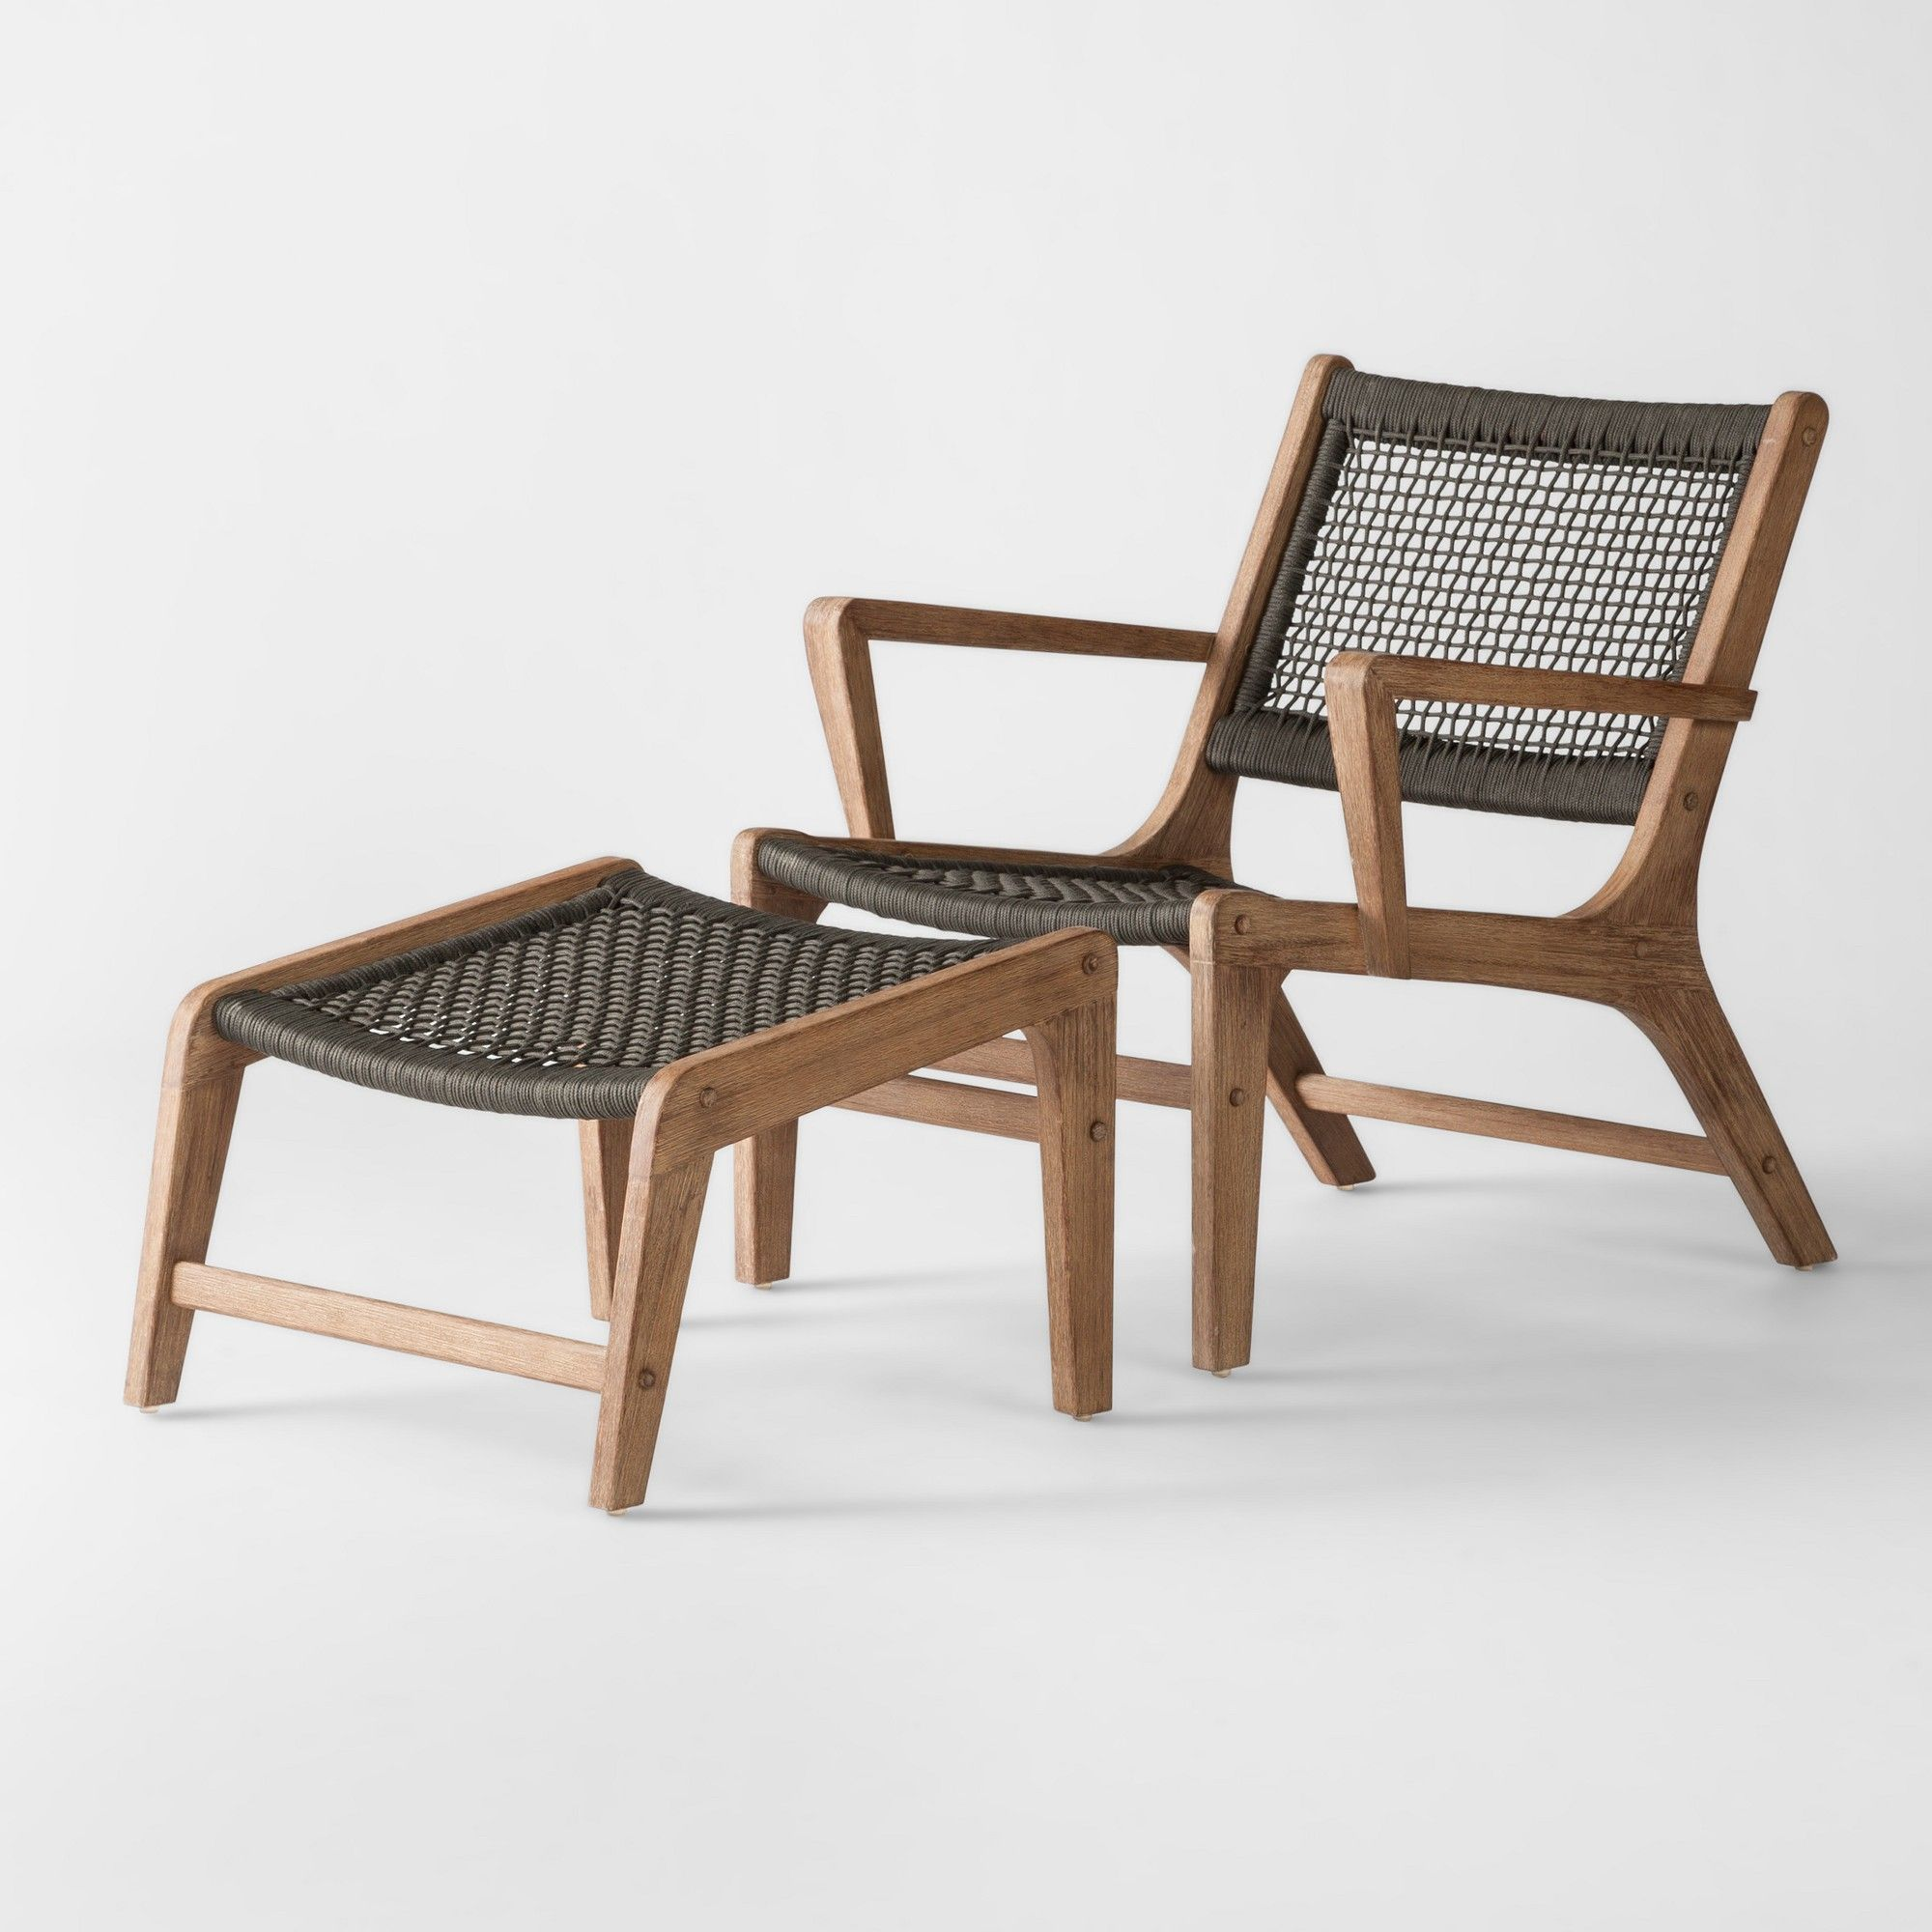 Sensational Modern Outdoor Project 62 Oceans 2Pc Wood Rope Patio Club Squirreltailoven Fun Painted Chair Ideas Images Squirreltailovenorg